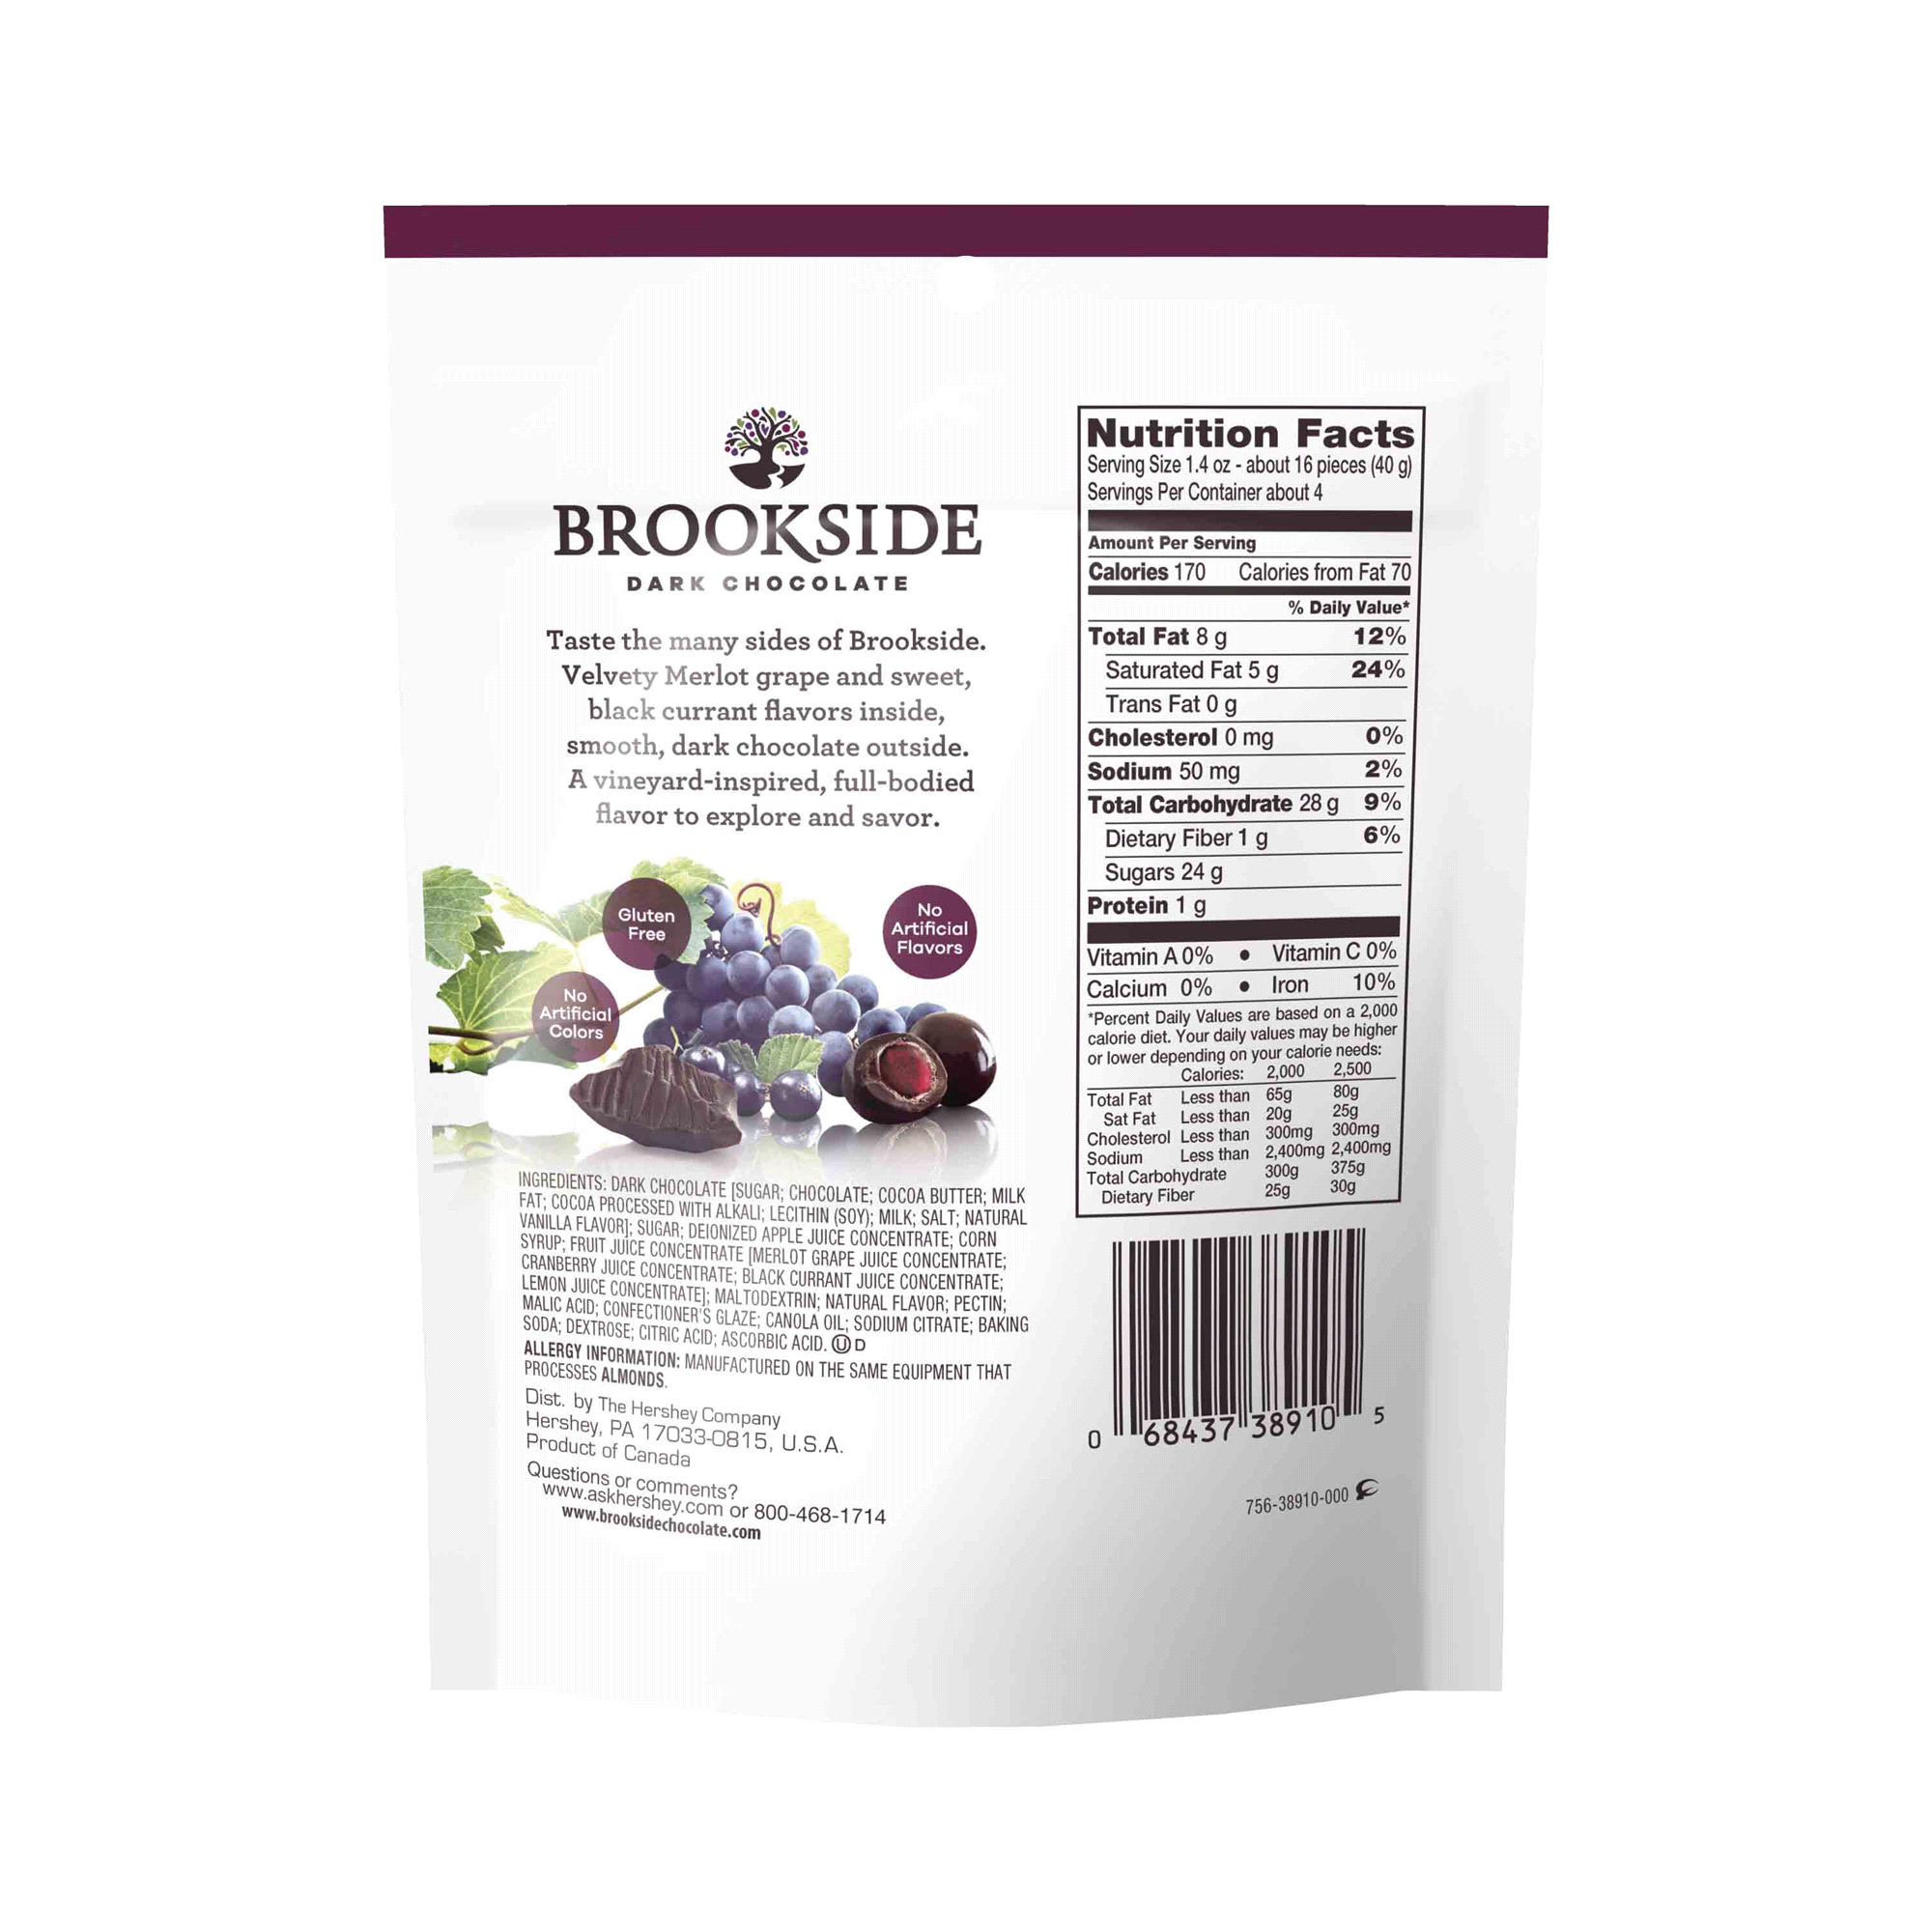 BROOKSIDE Dark Chocolate Merlot Grape & Black Currant Flavors 6oz